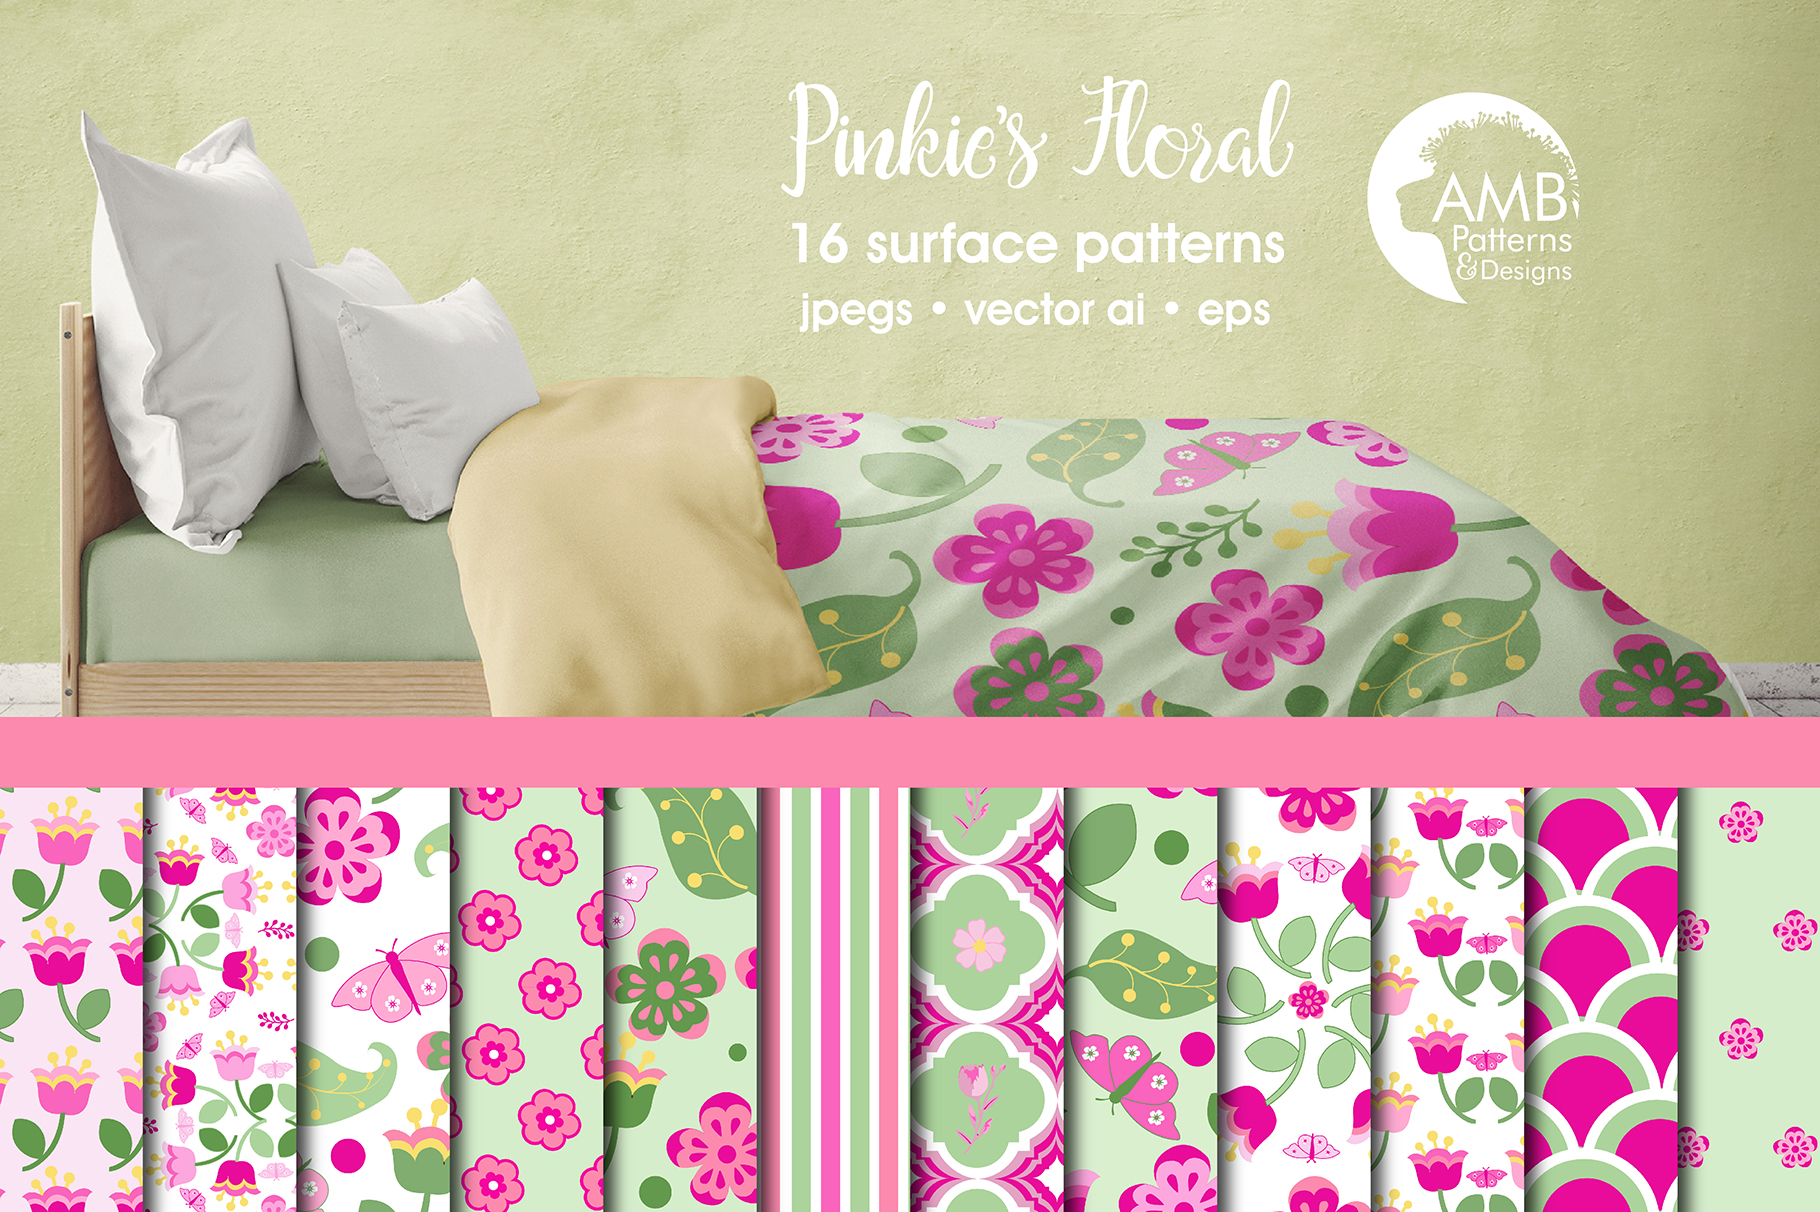 Pinkies Floral Patterns Pink Floral Papers Amb 1410